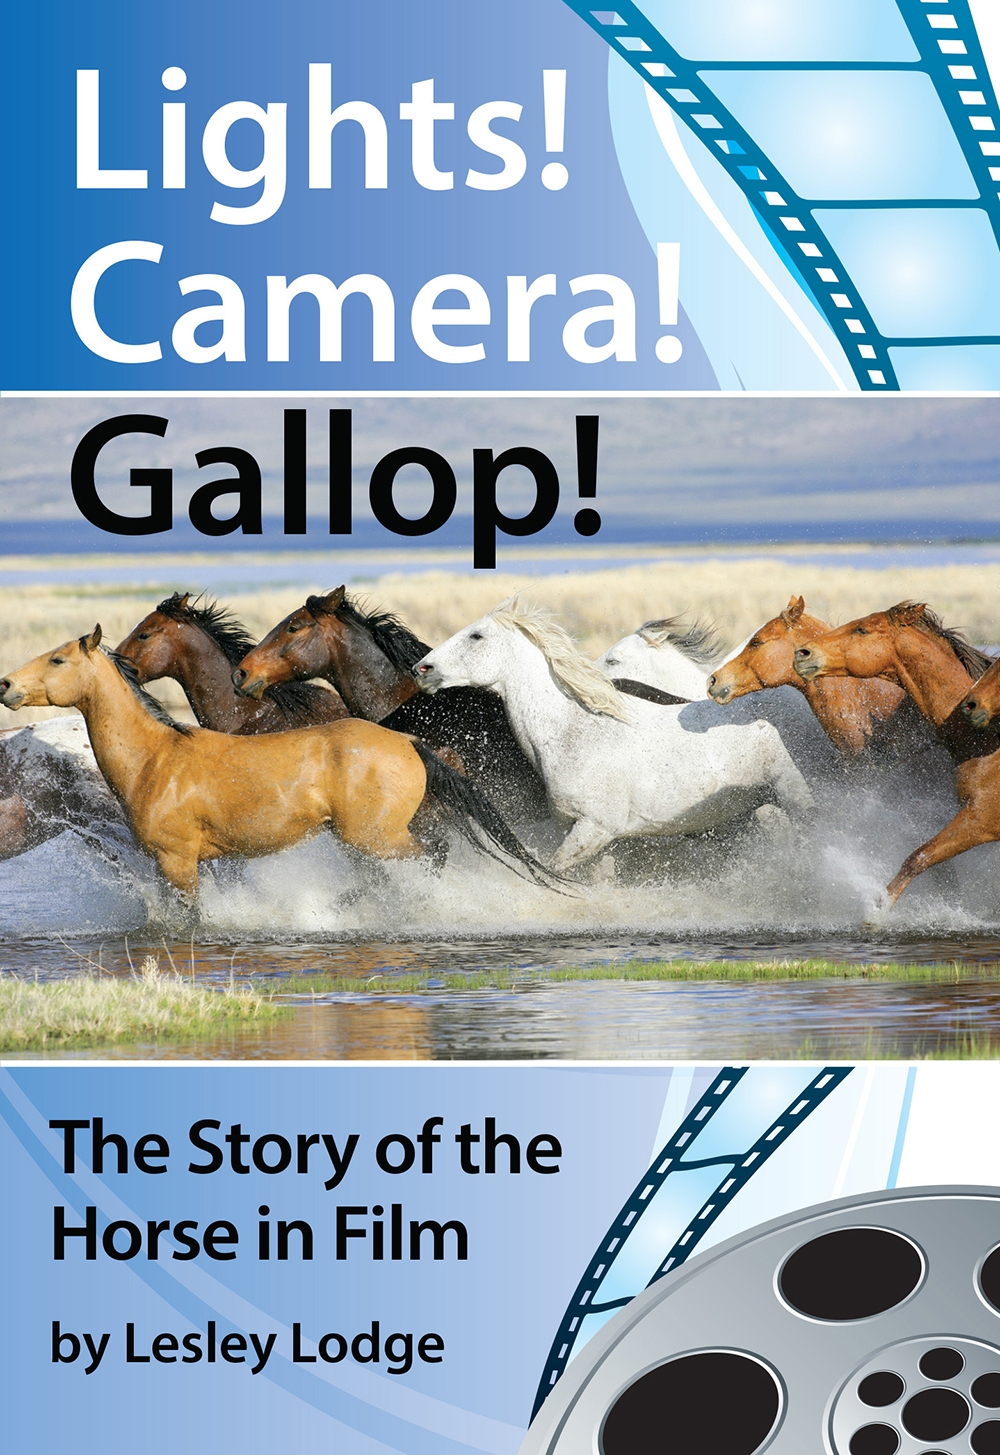 Lights! Camera! Gallop!